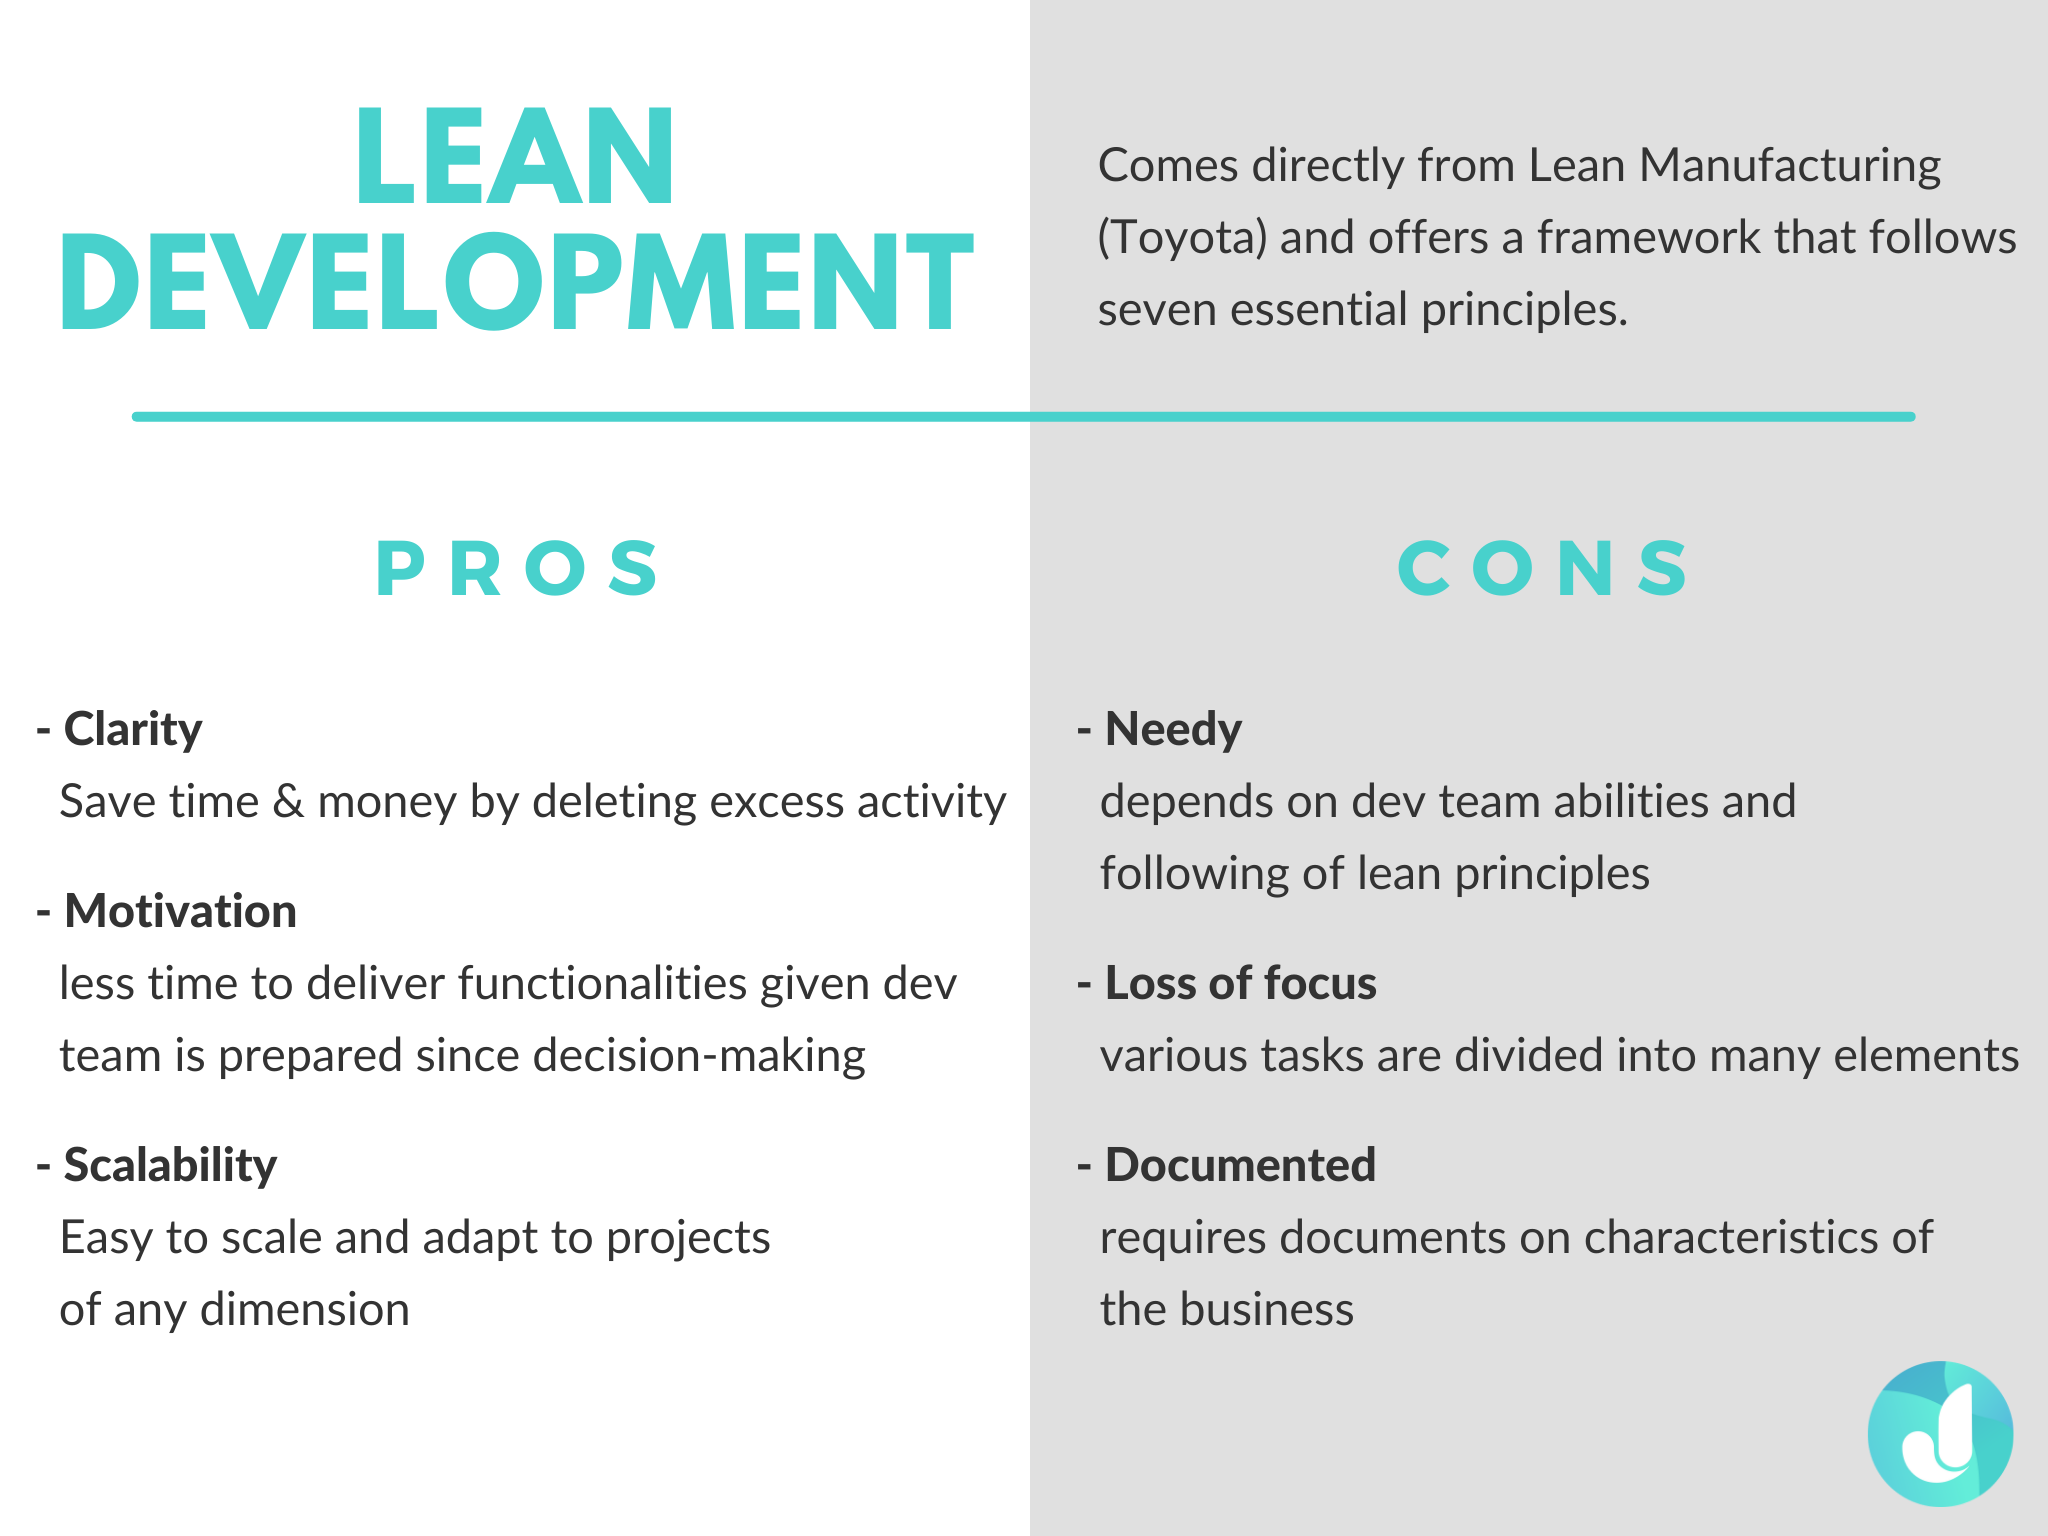 The pros and cons of Lean Development Agile Methodology